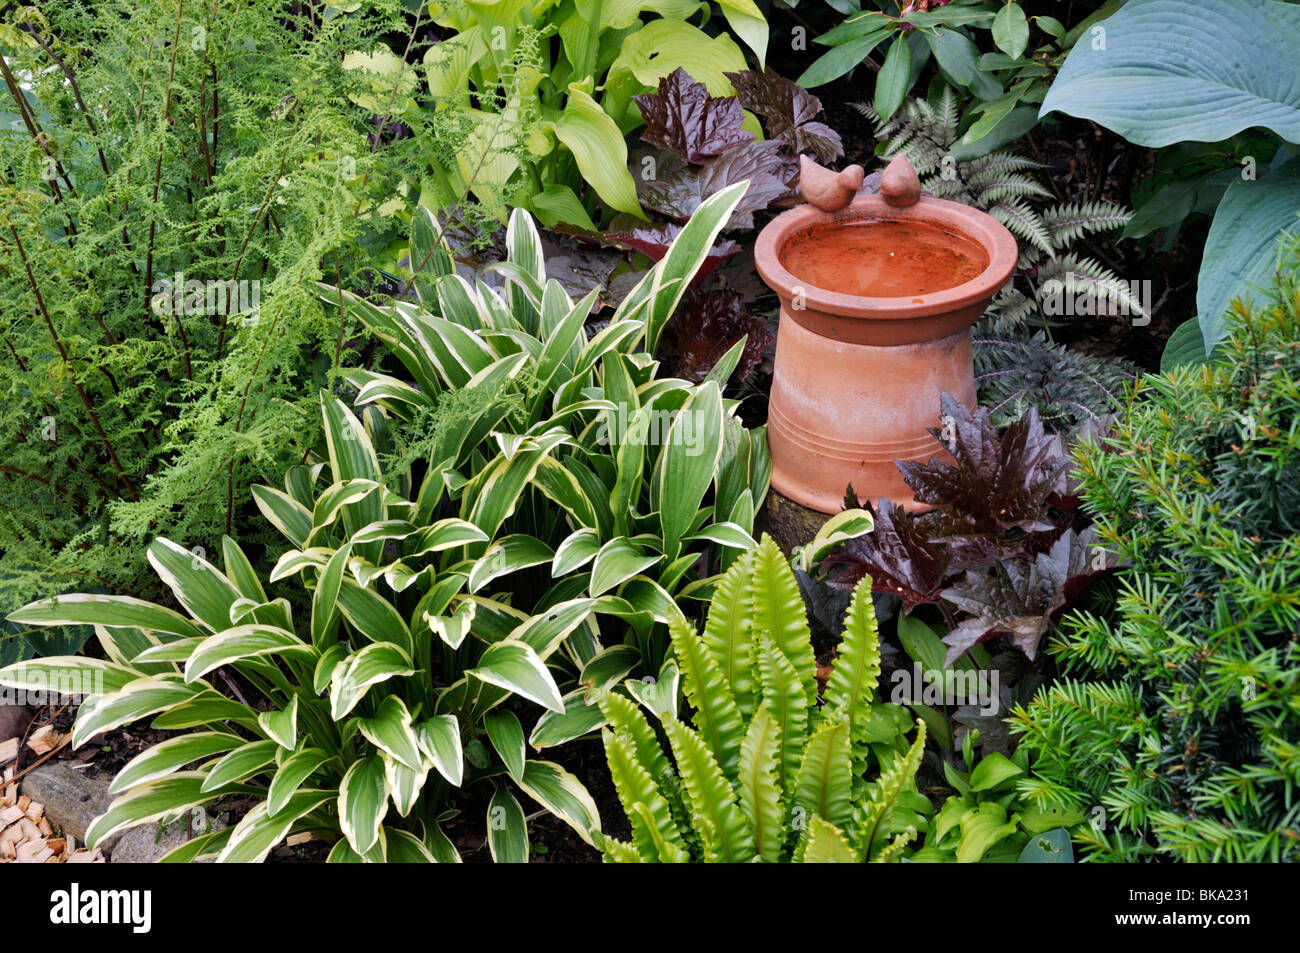 Plantain lilies Hosta harts tongue fern Asplenium